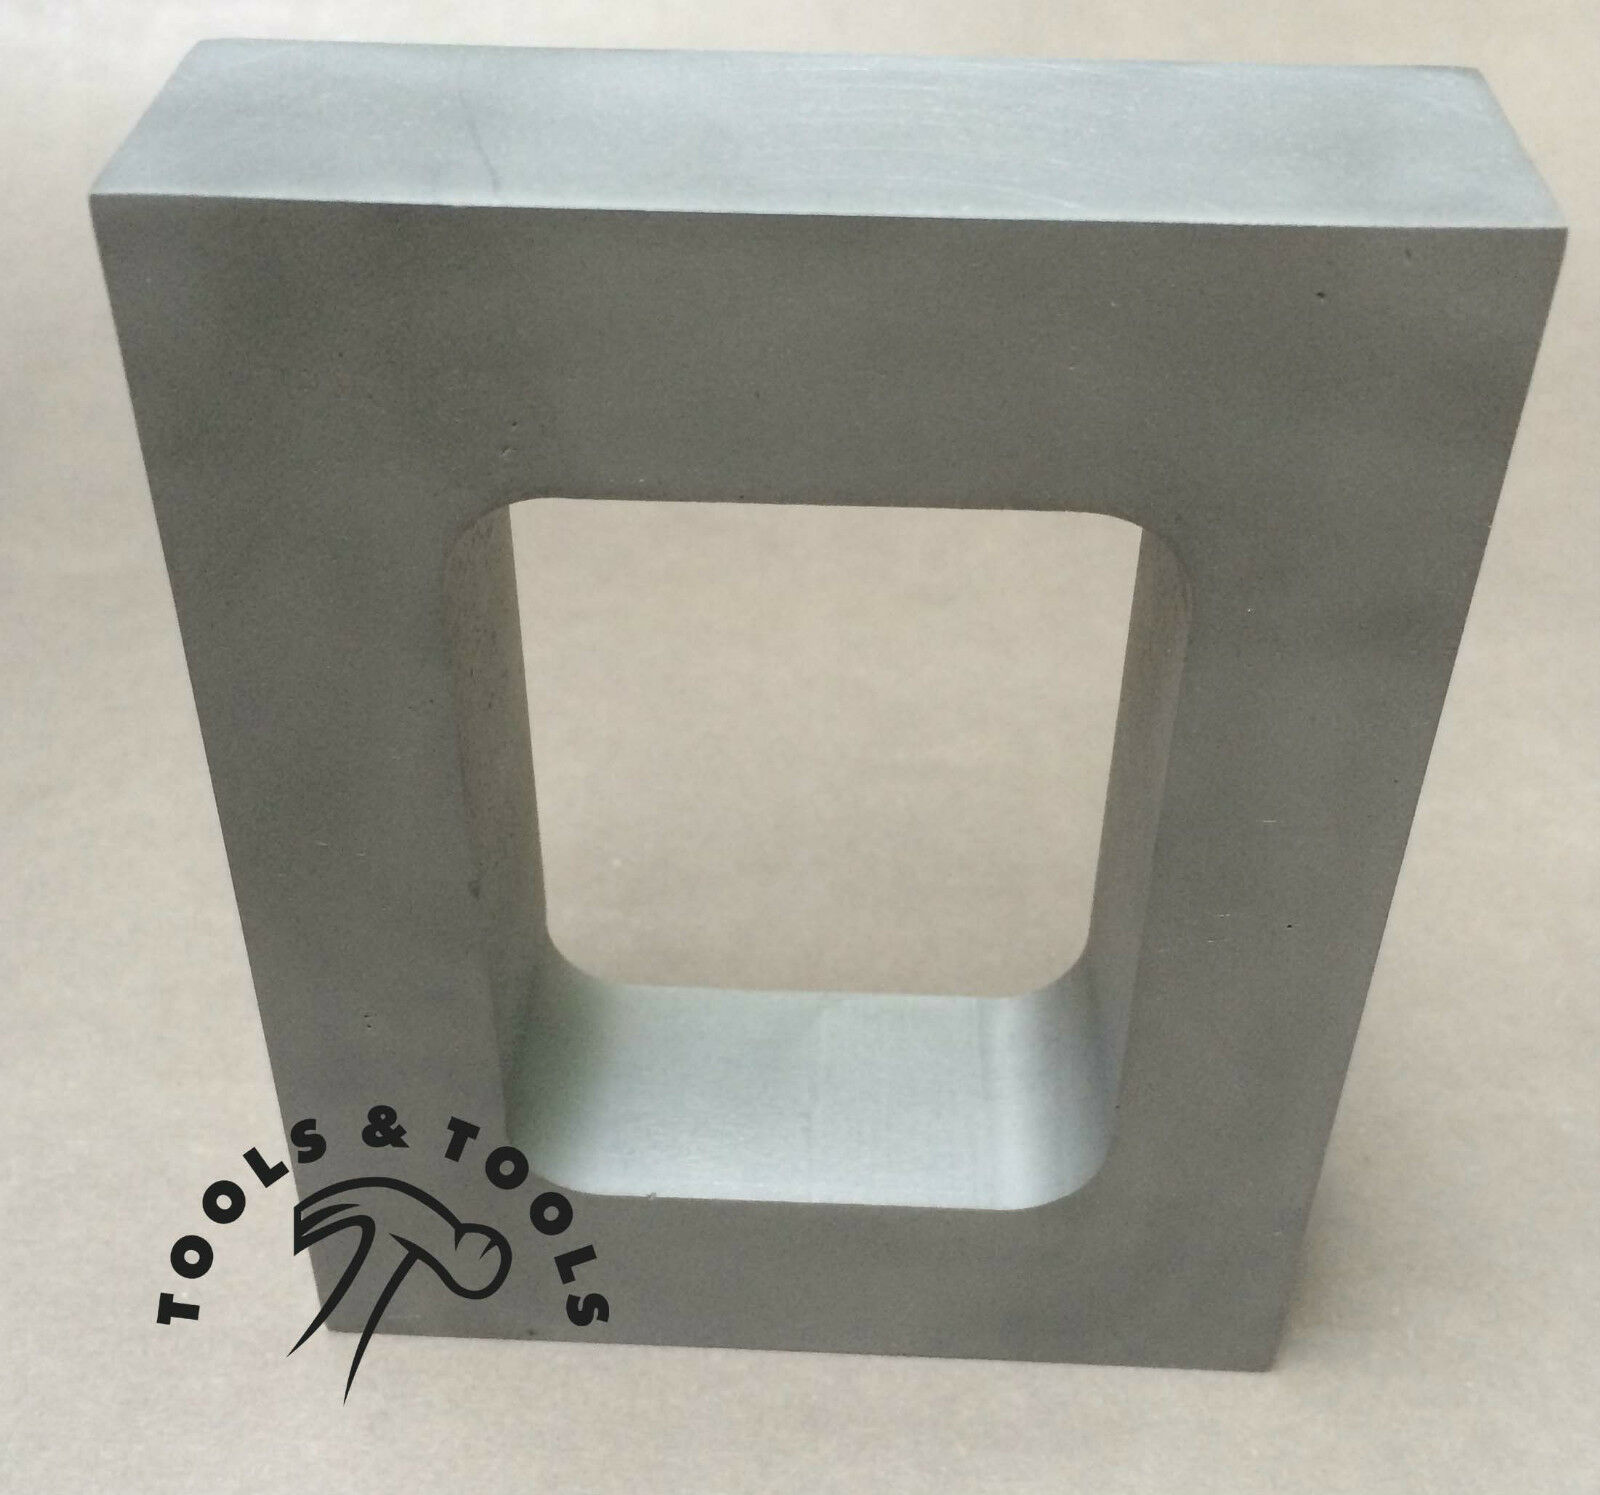 ALUMINUM MOLD FRAME SINGLE CAVITY VULCANIZER RUBBER 1'' THICK JEWELRY MAKING